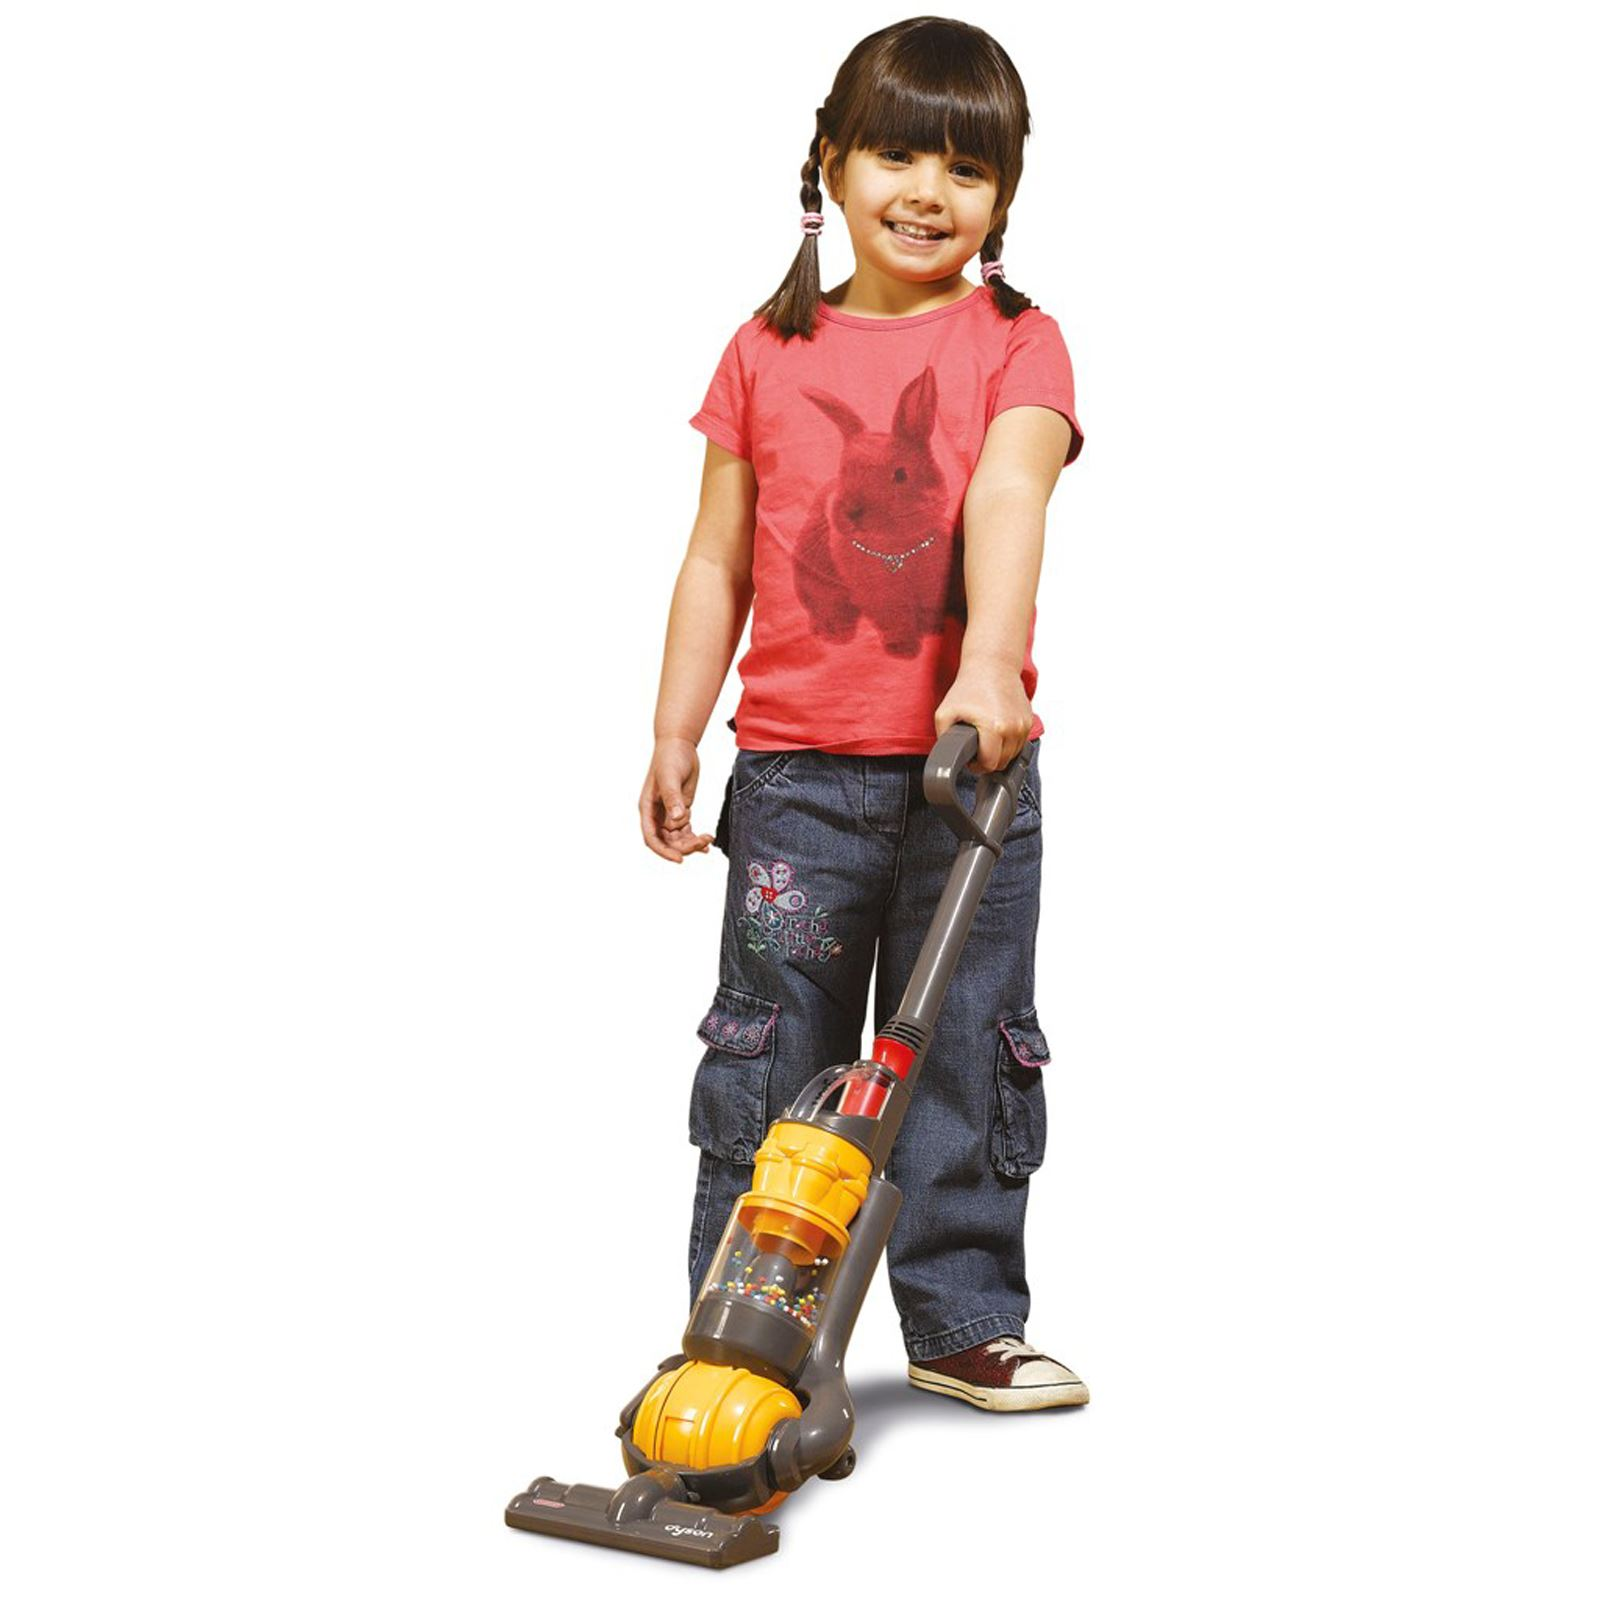 Indexbild 4 - KIDS VACUUM CLEANERS - LITTLE HENRY HETTY DYSON - KIDS CHILDRENS ROLE PLAY